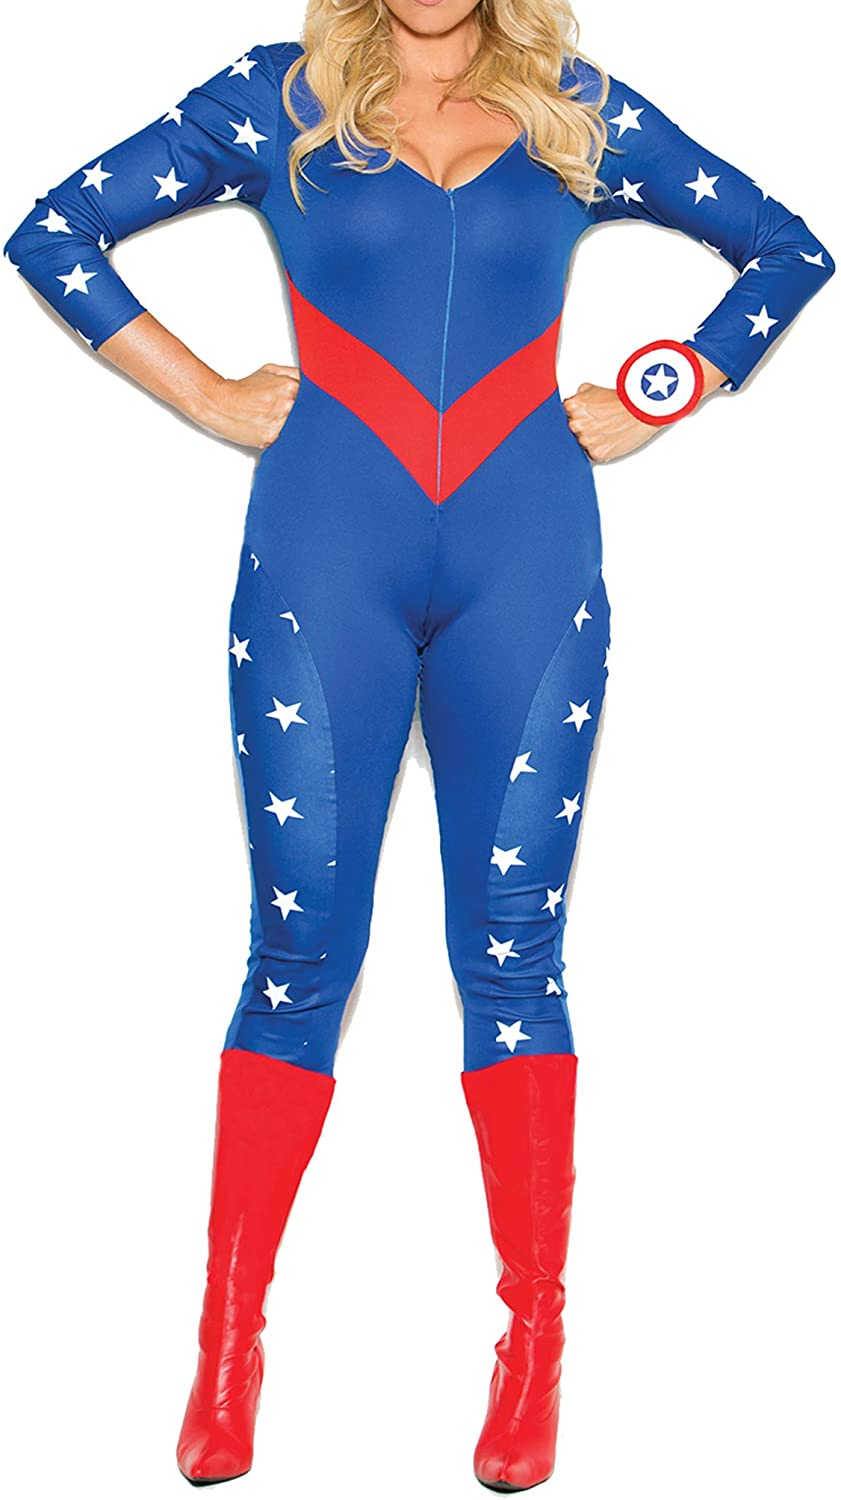 Hot Spot Plus Size American Hero Costume Jumpsuit, Wrist Band & Head Piece Only